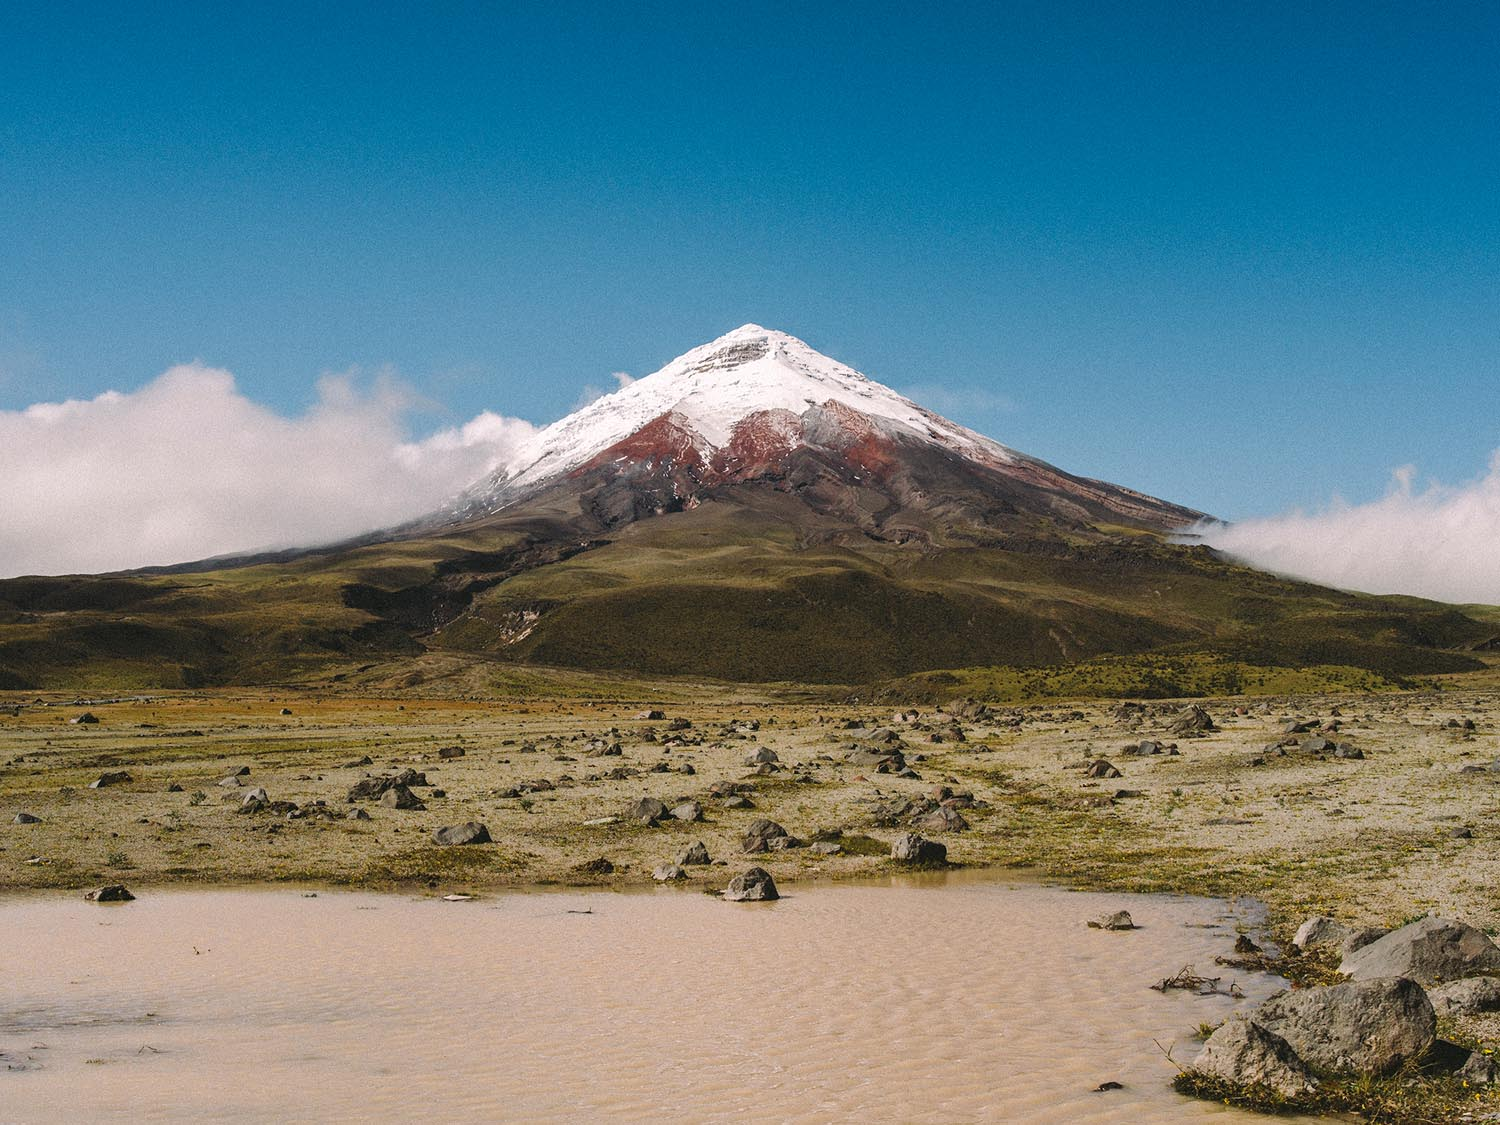 Cotopaxi in all its glory.